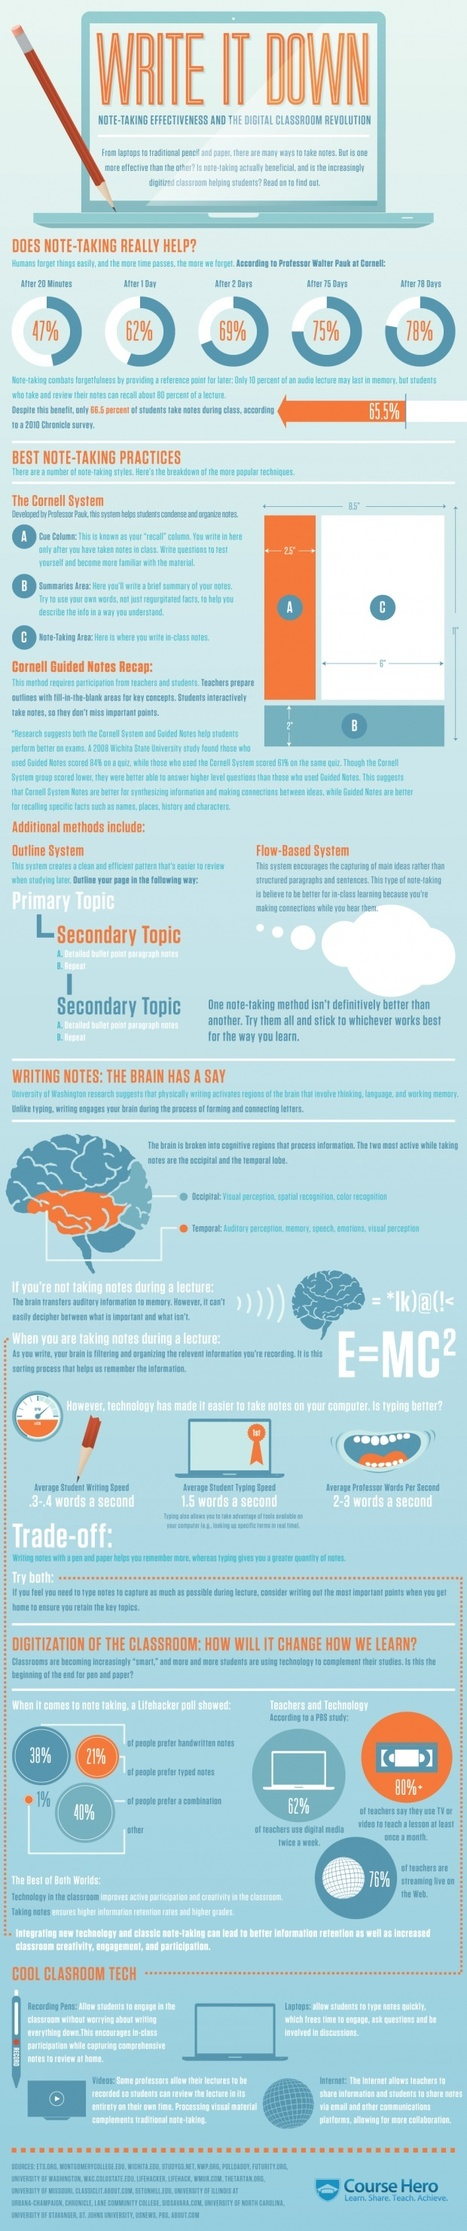 10 Note Taking Tips for The 21st Century Teache... | inspiring | Scoop.it